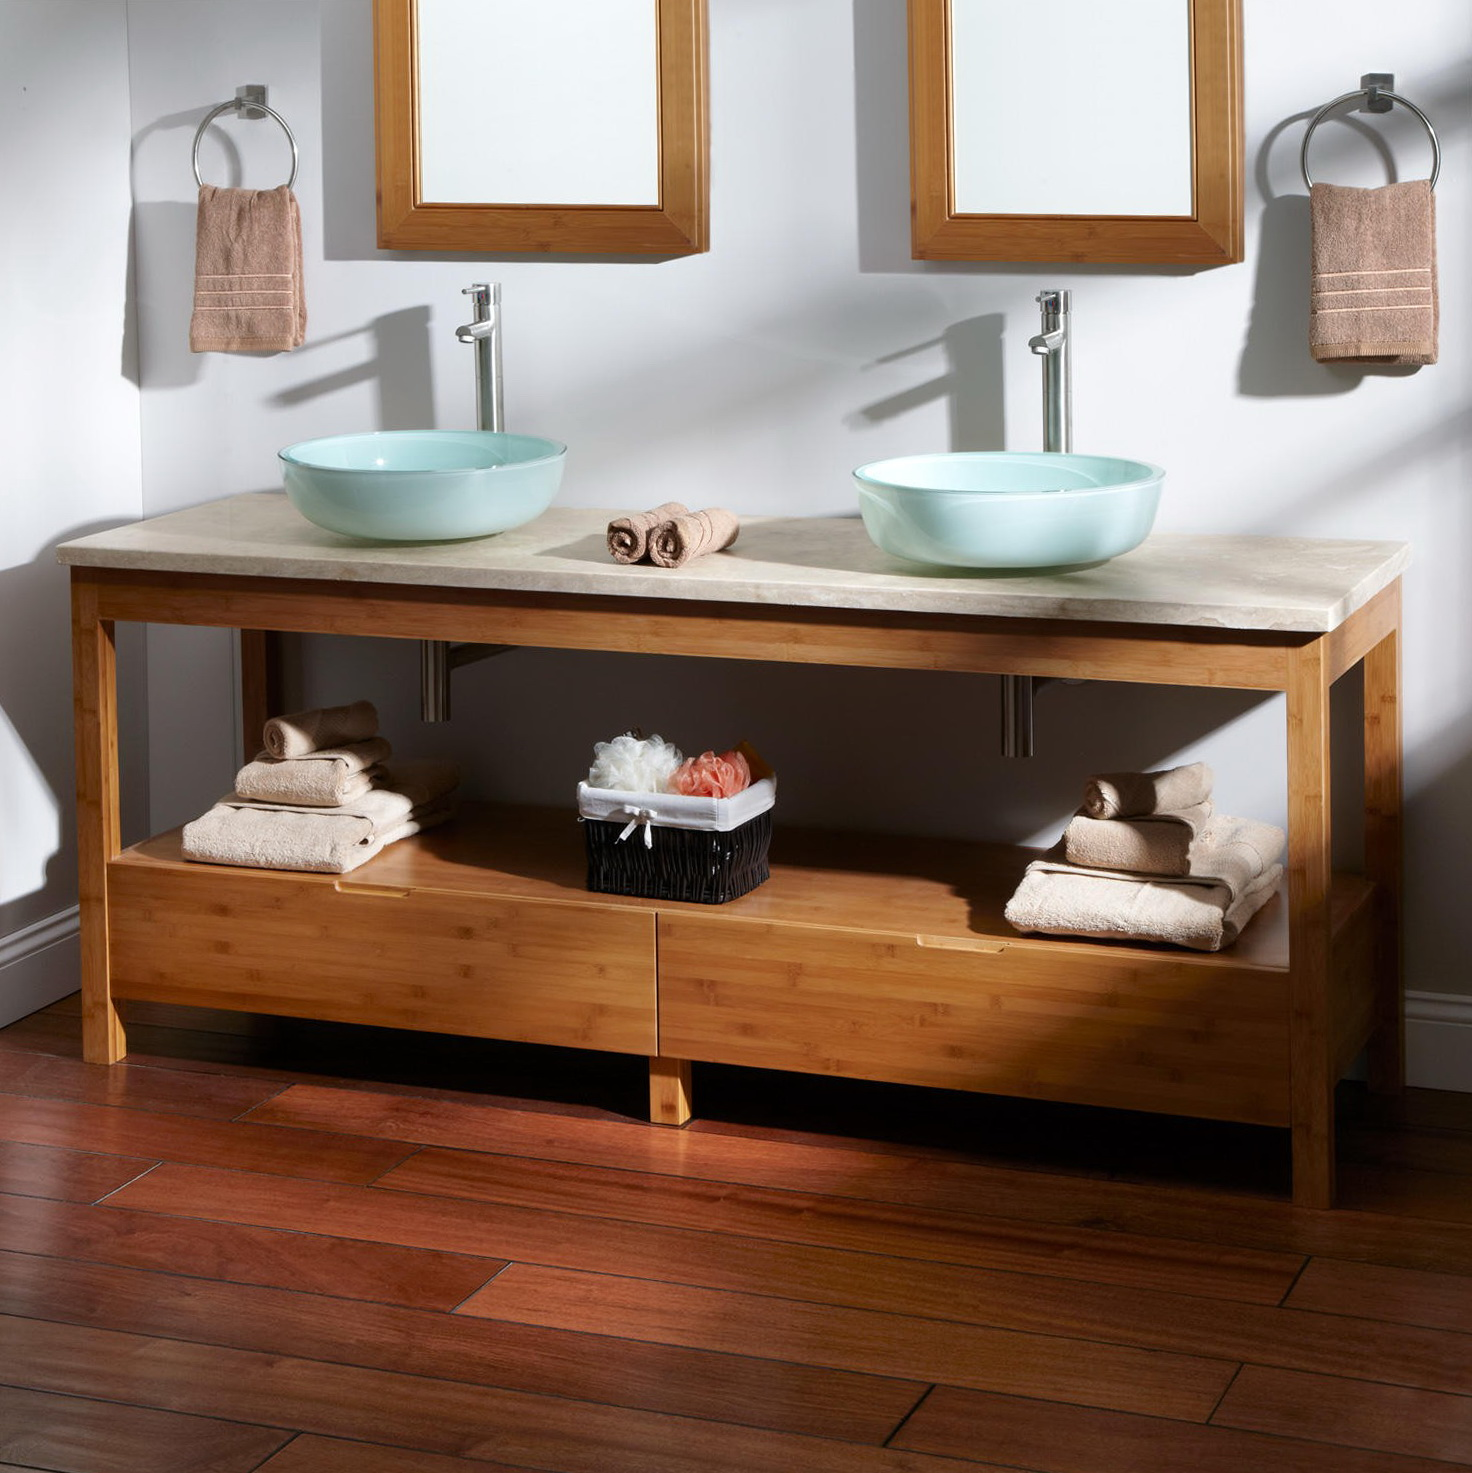 Double Vanity Bathroom Home Depot home depot double vanity bathroom | home design ideas